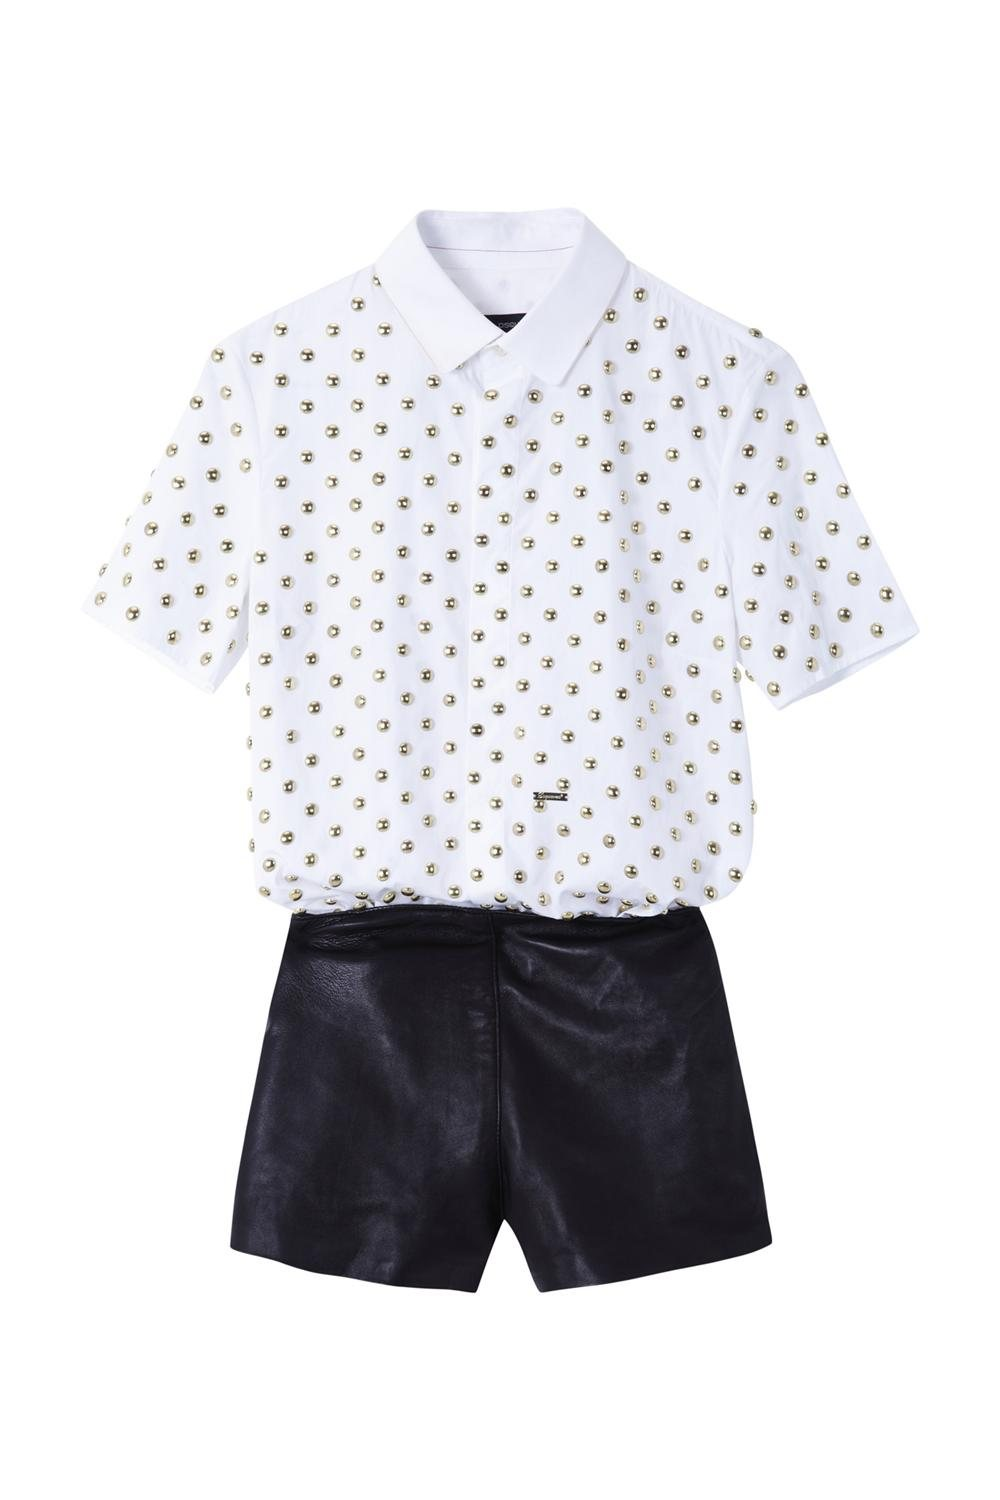 Instyle-AnaRome-180313 48341. Camisa y short